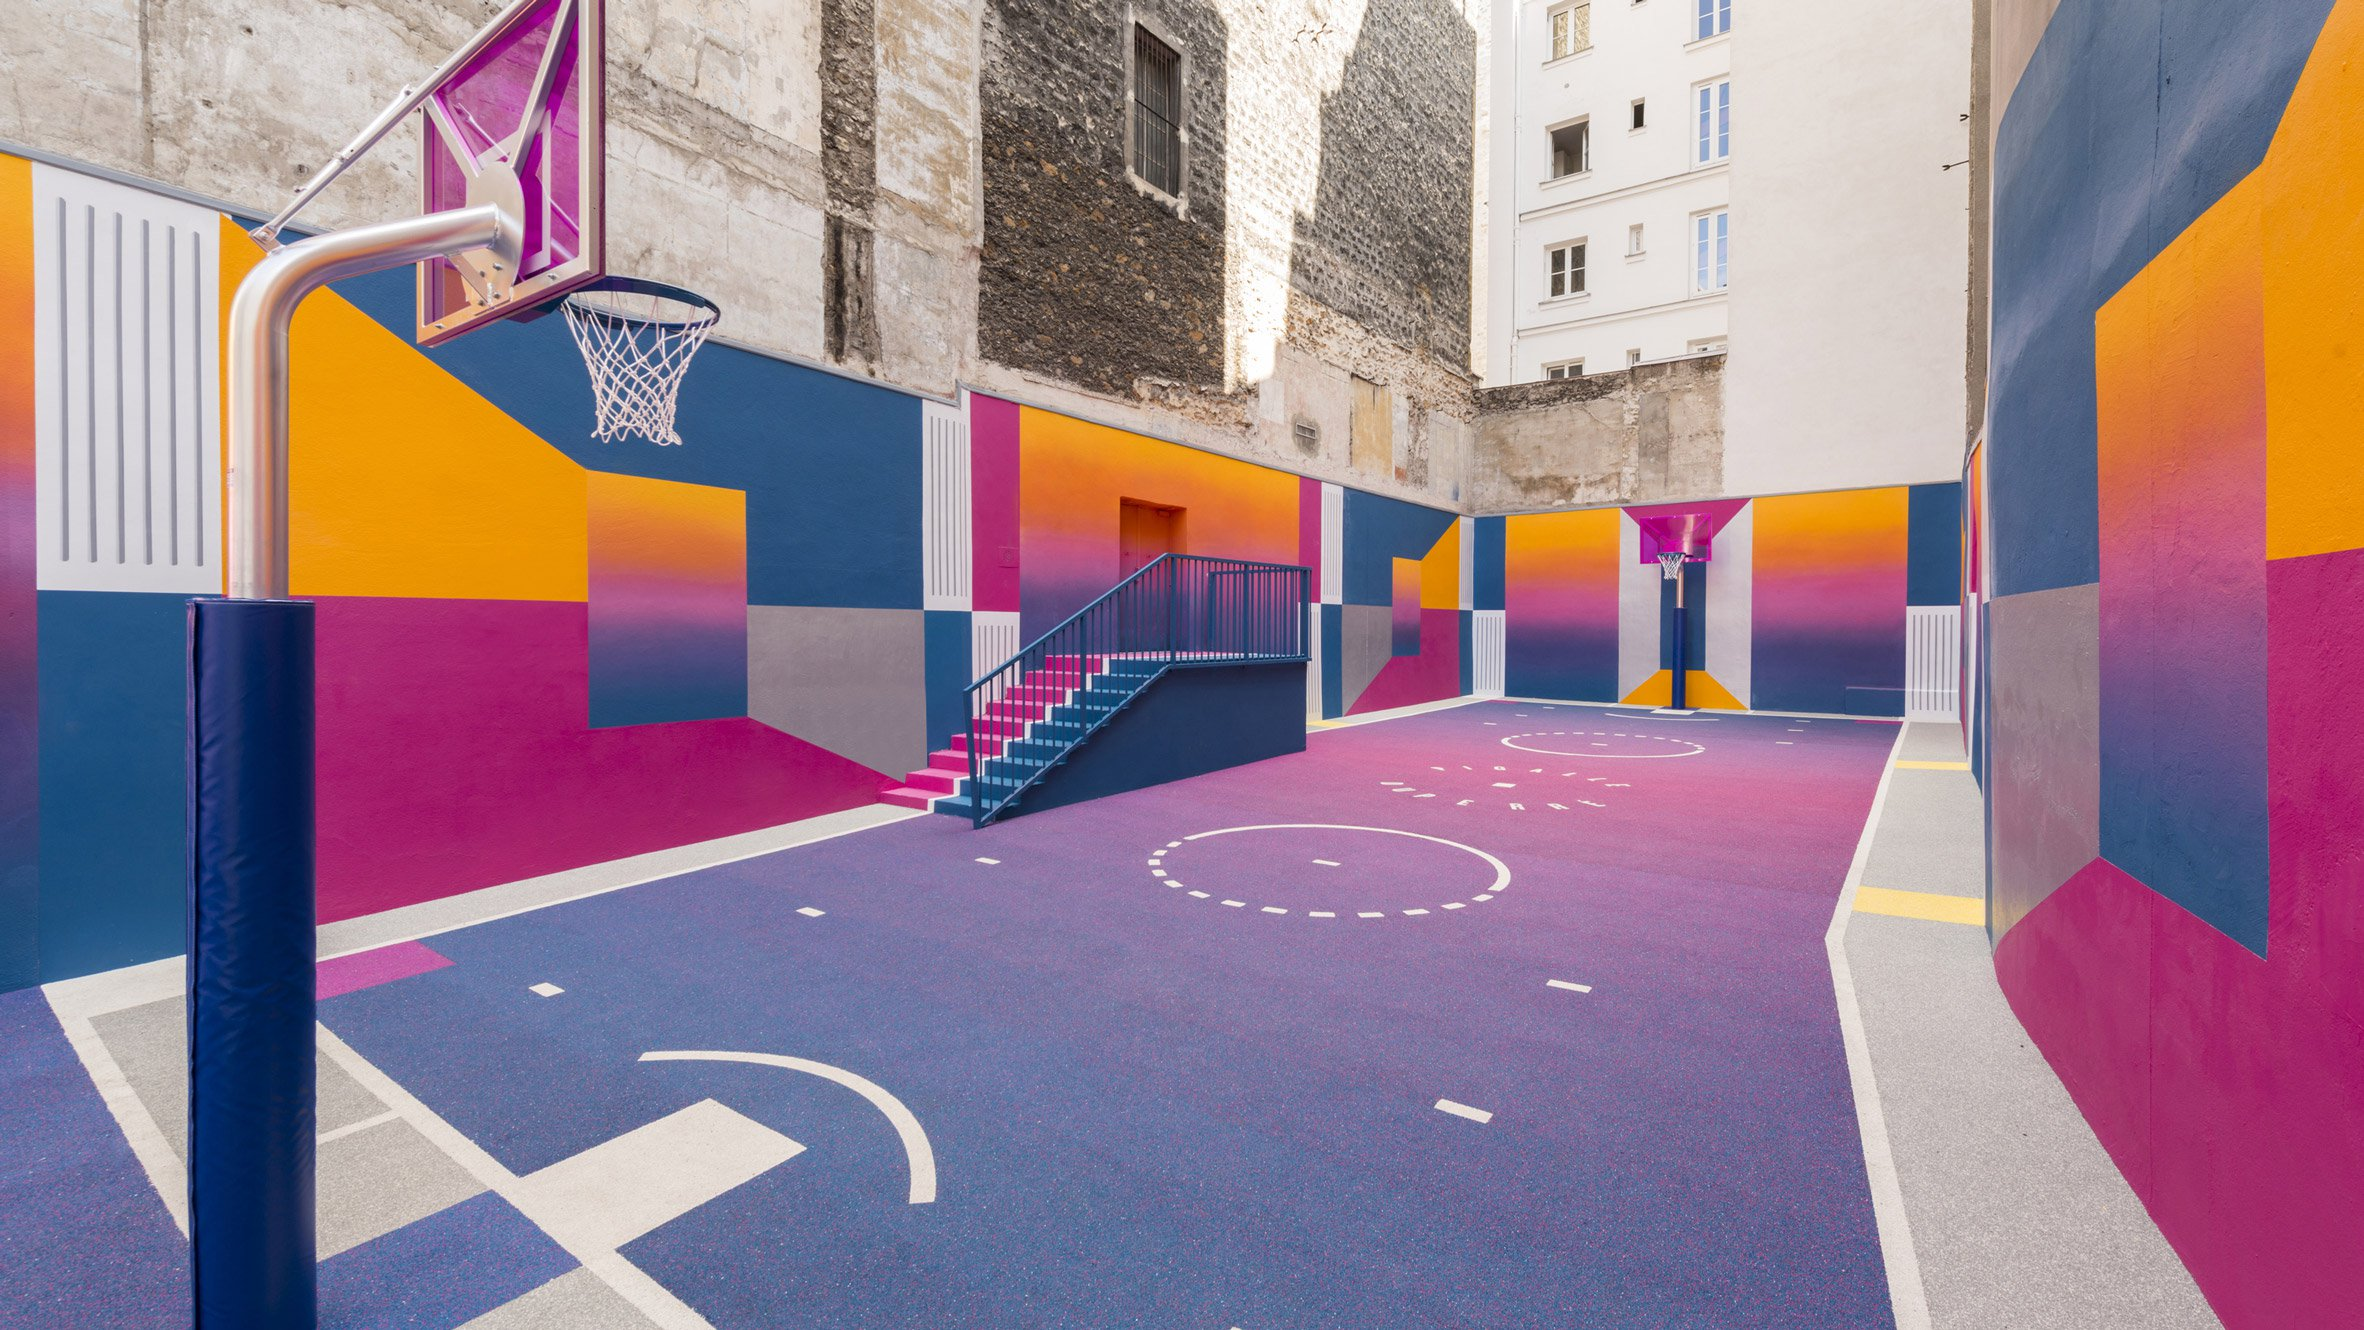 basket-court-pigalle-studio-architecture-public-leisure-paris-france-_dezeen_hero-b.jpg